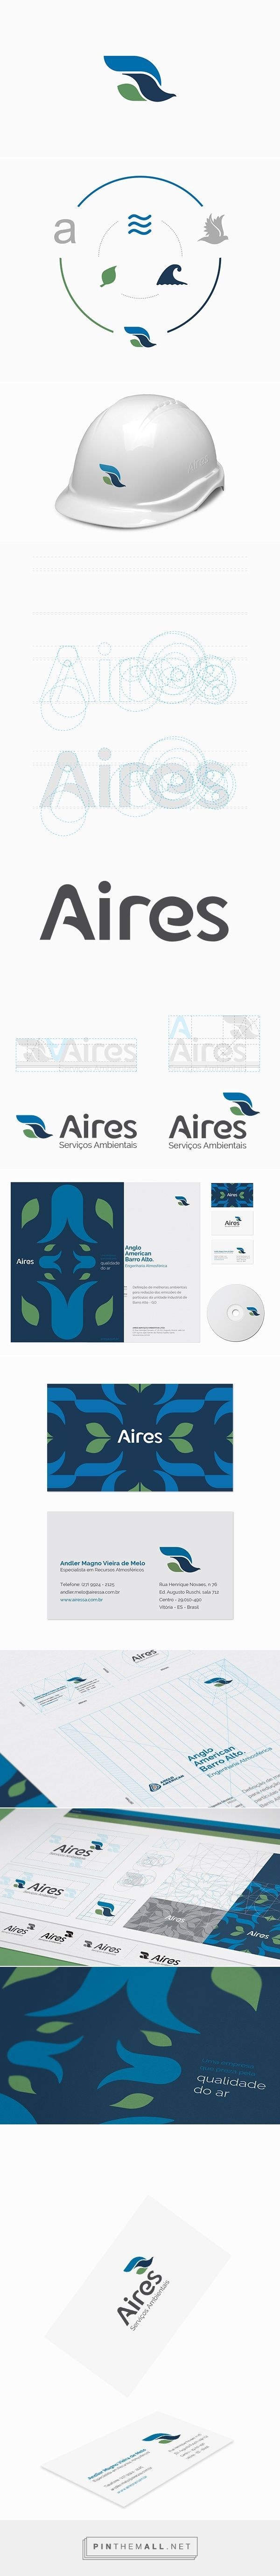 Aires on Behance - created via http://pinthemall.net